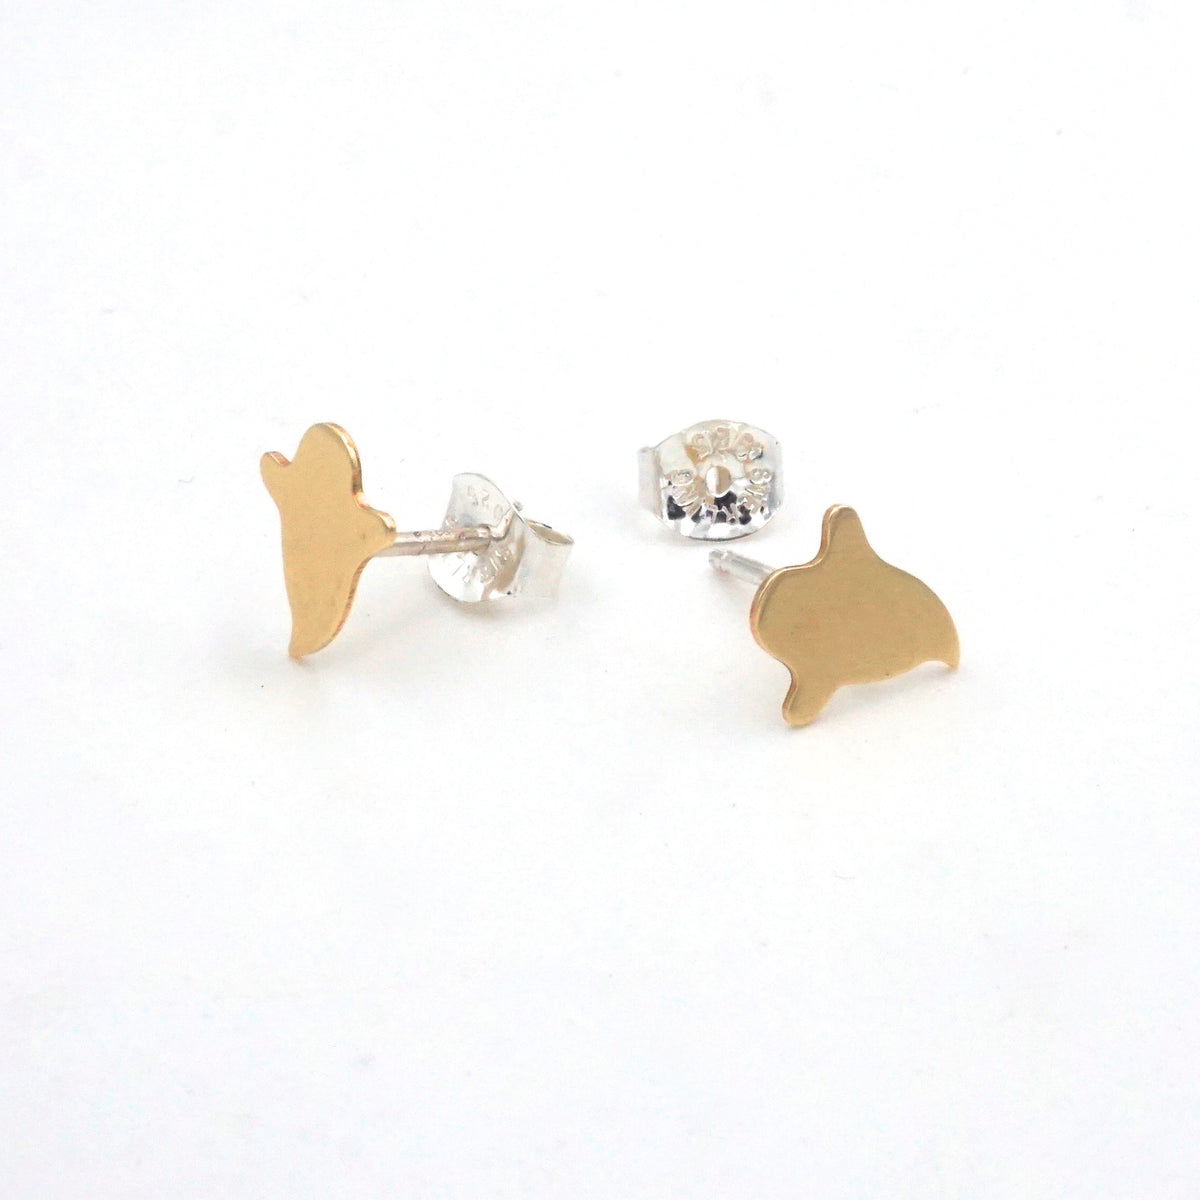 Ghost Stud Earrings H001 - Virginia Wynne Designs